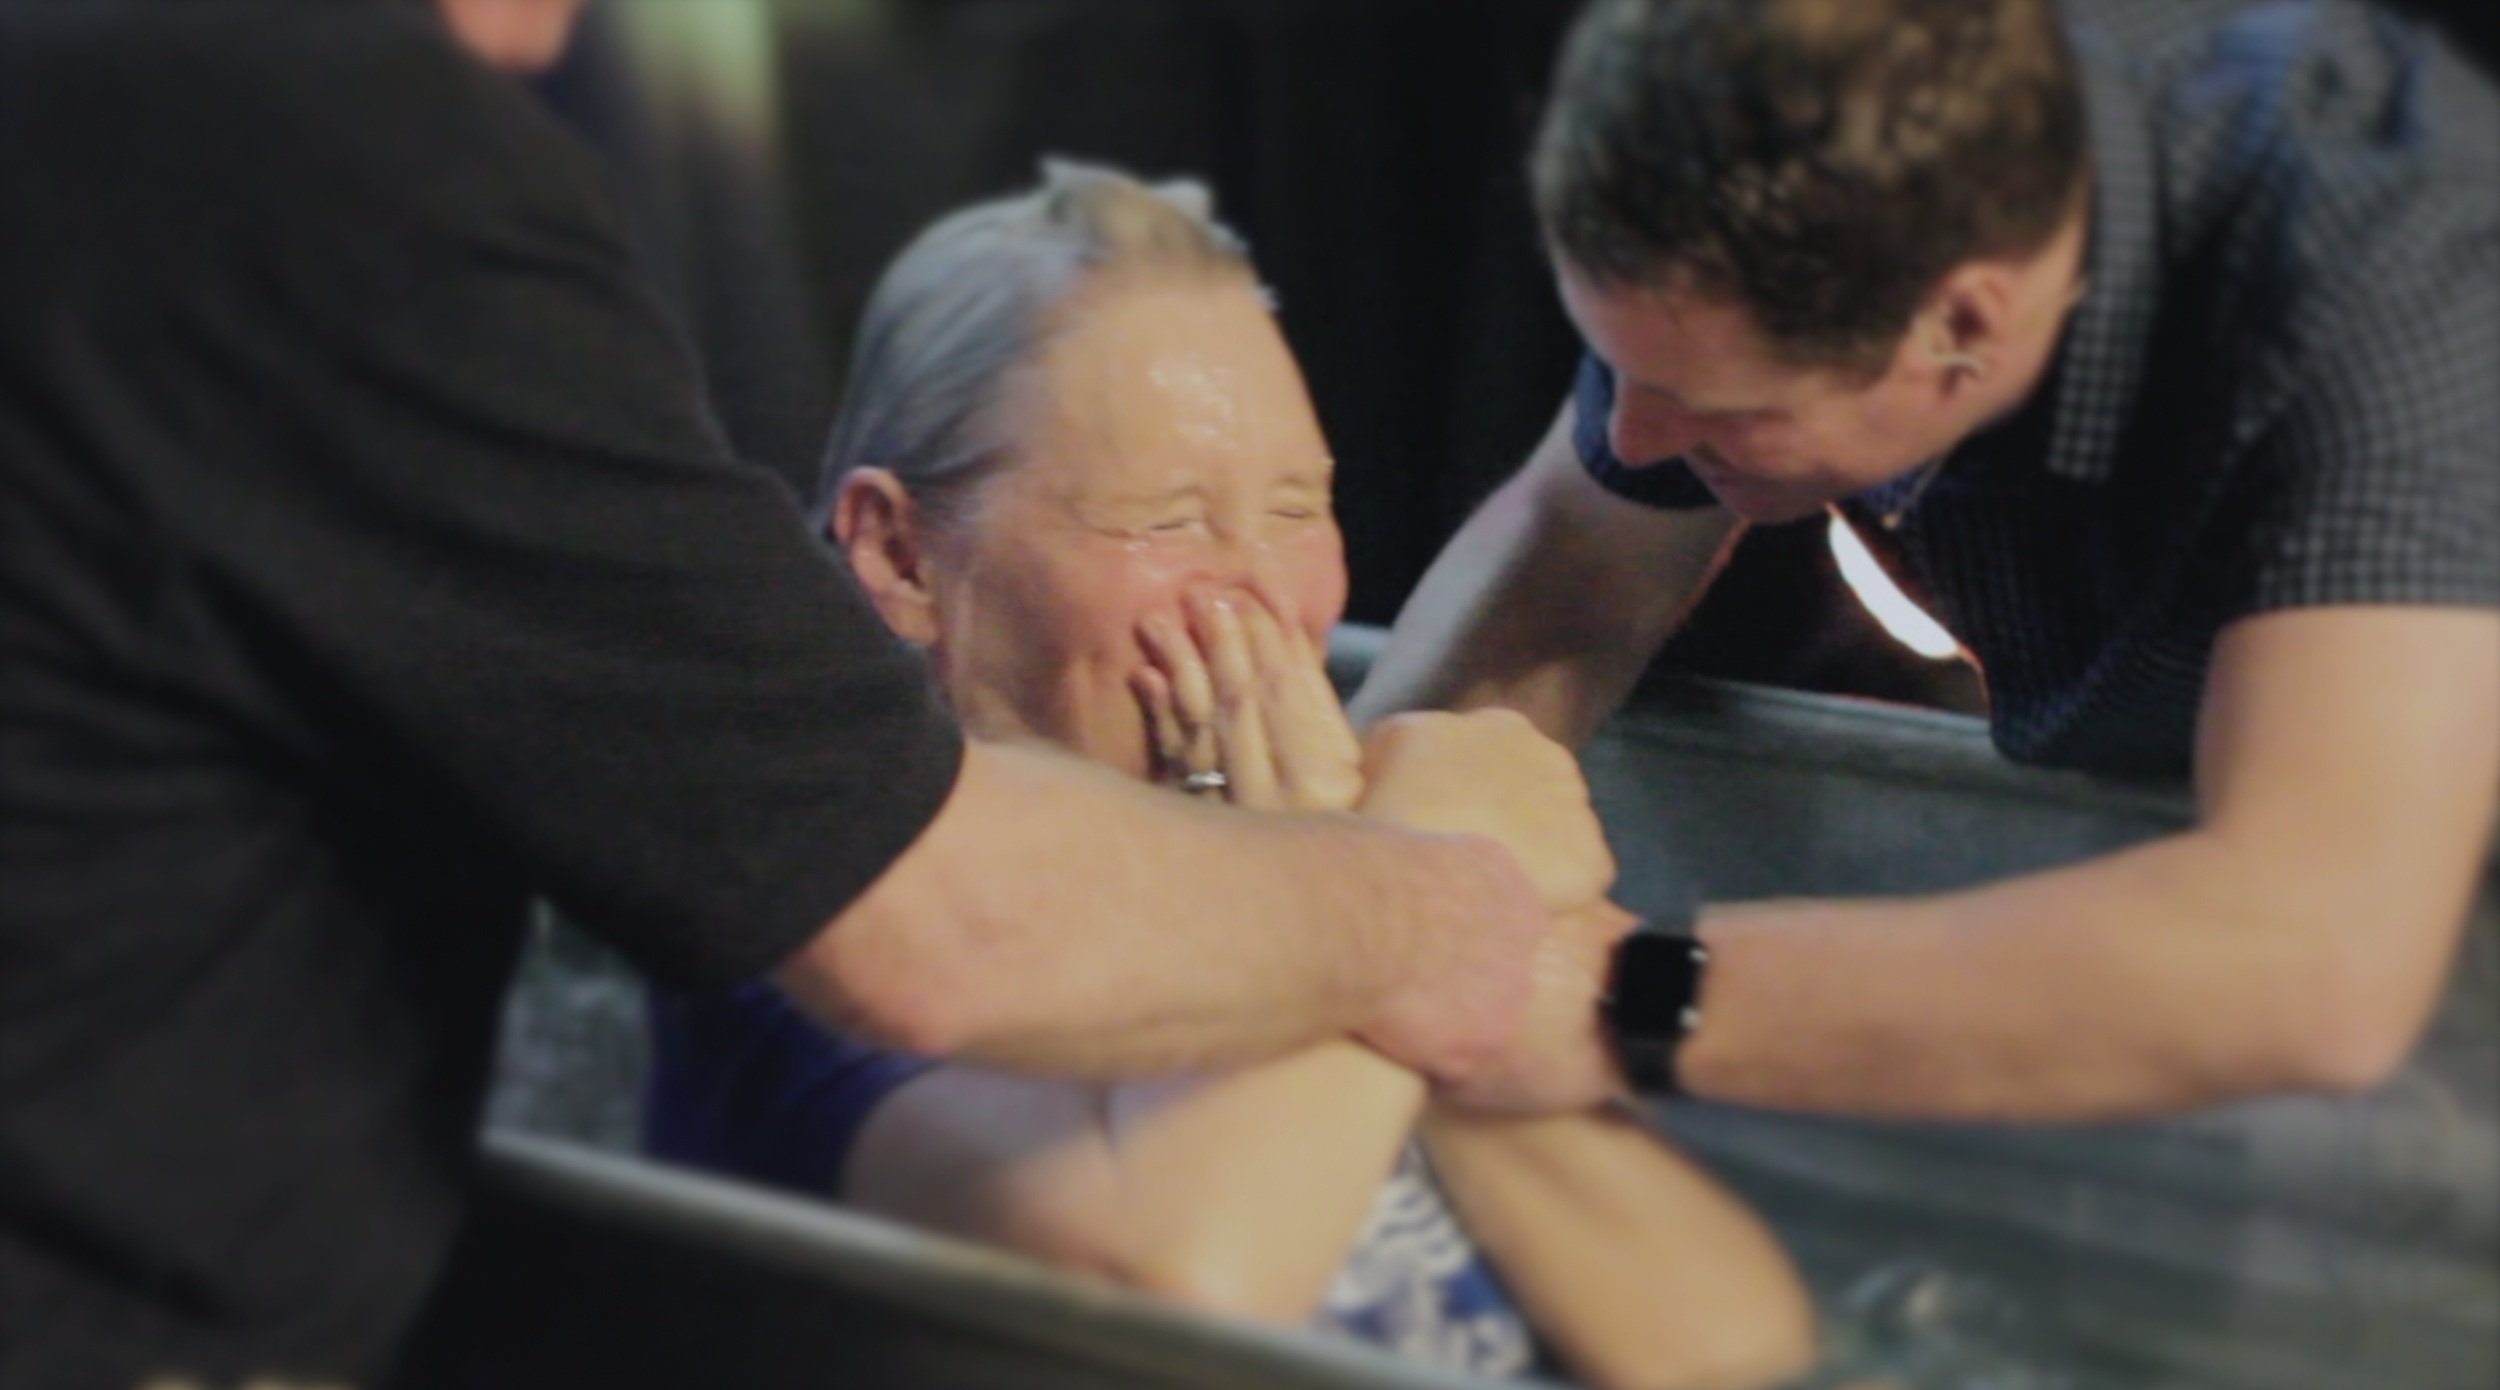 Baptism. - Why should you get baptized? Well, Jesus did…. Baptism is a declaration to the world that you've given your life to Jesus and you're ALL IN. If you would like to sign up for our next baptism you can click here. For more information or any questions you may have please email: info@connextion.church